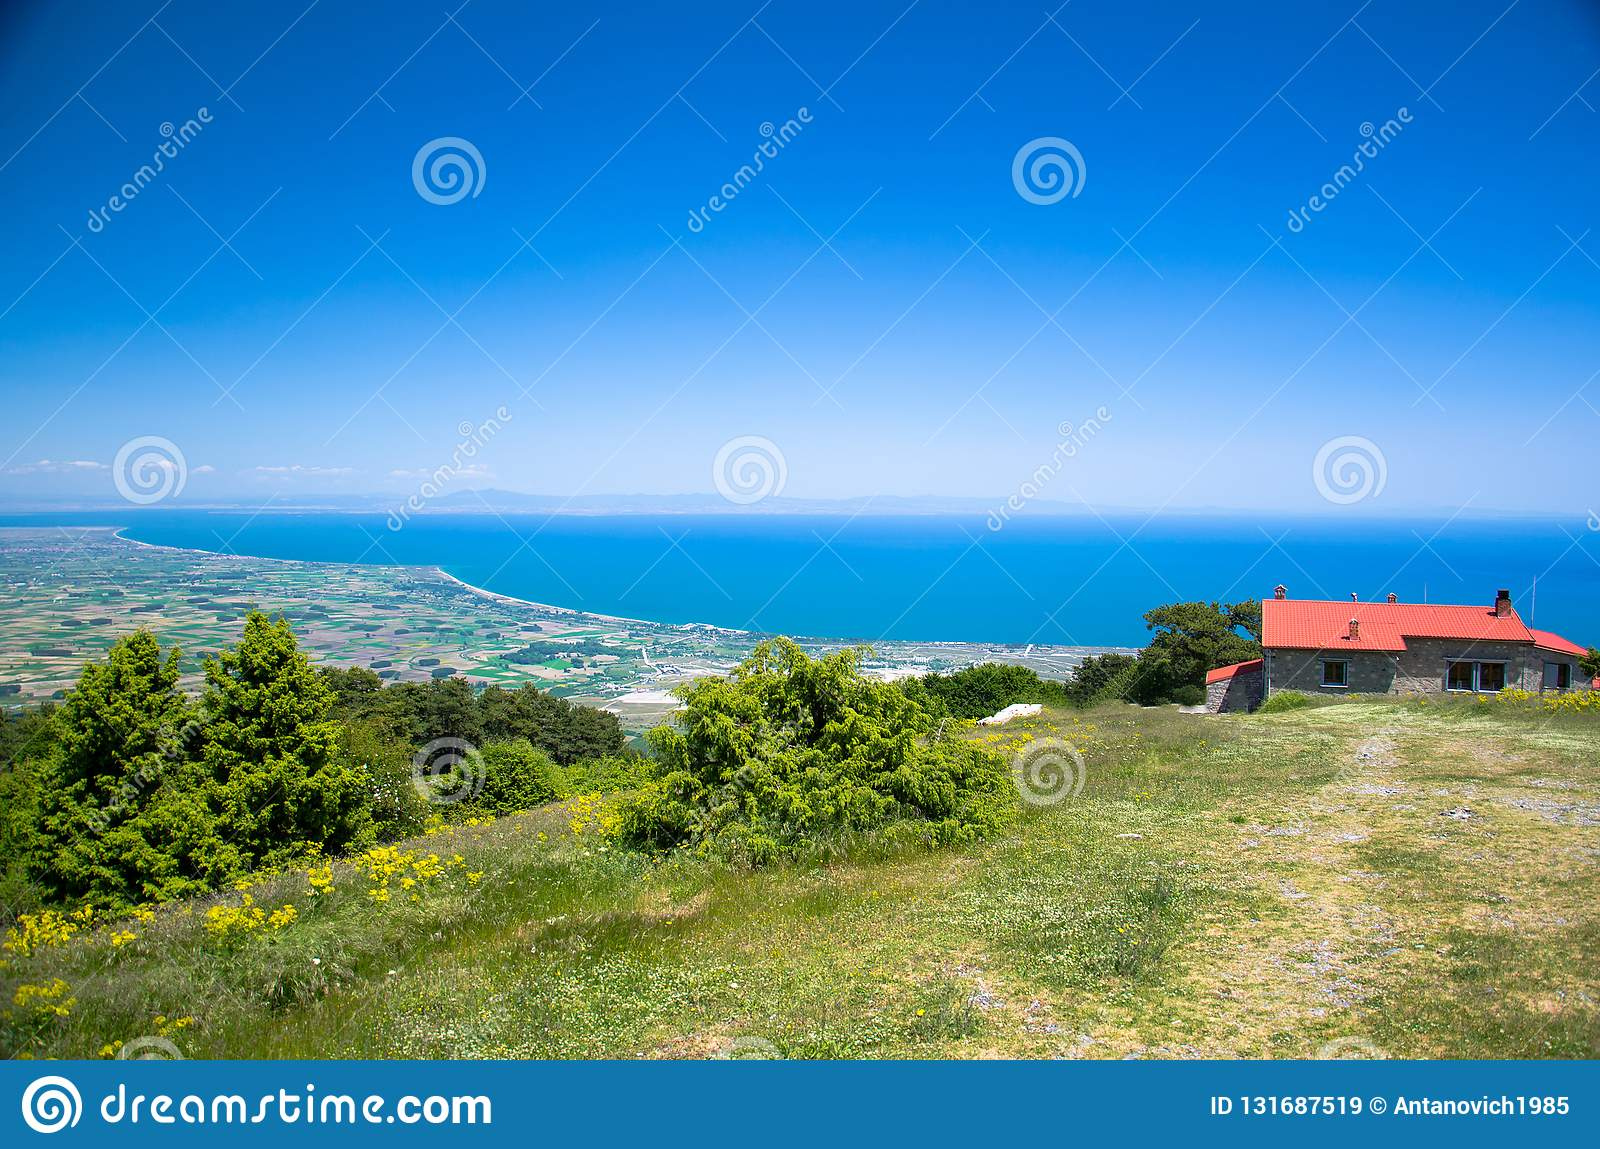 Panoramic view of Thermaikos Gulf of Aegean sea and Khalkidiki or Halkidiki peninsula seen from Olympus mountains near building of